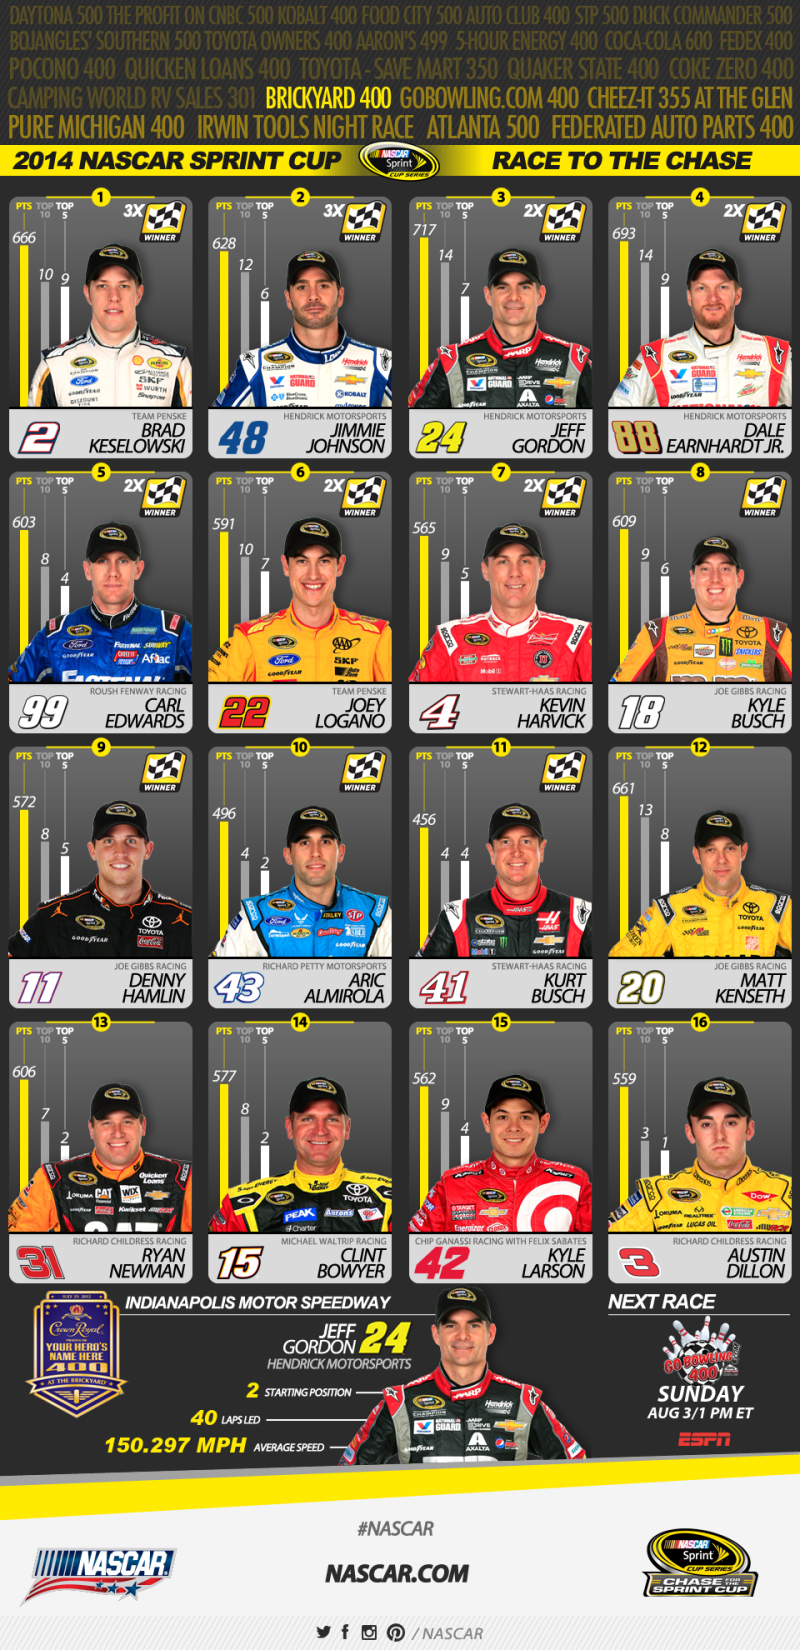 NASCAR Sprint Cup rankings 7-27-2014